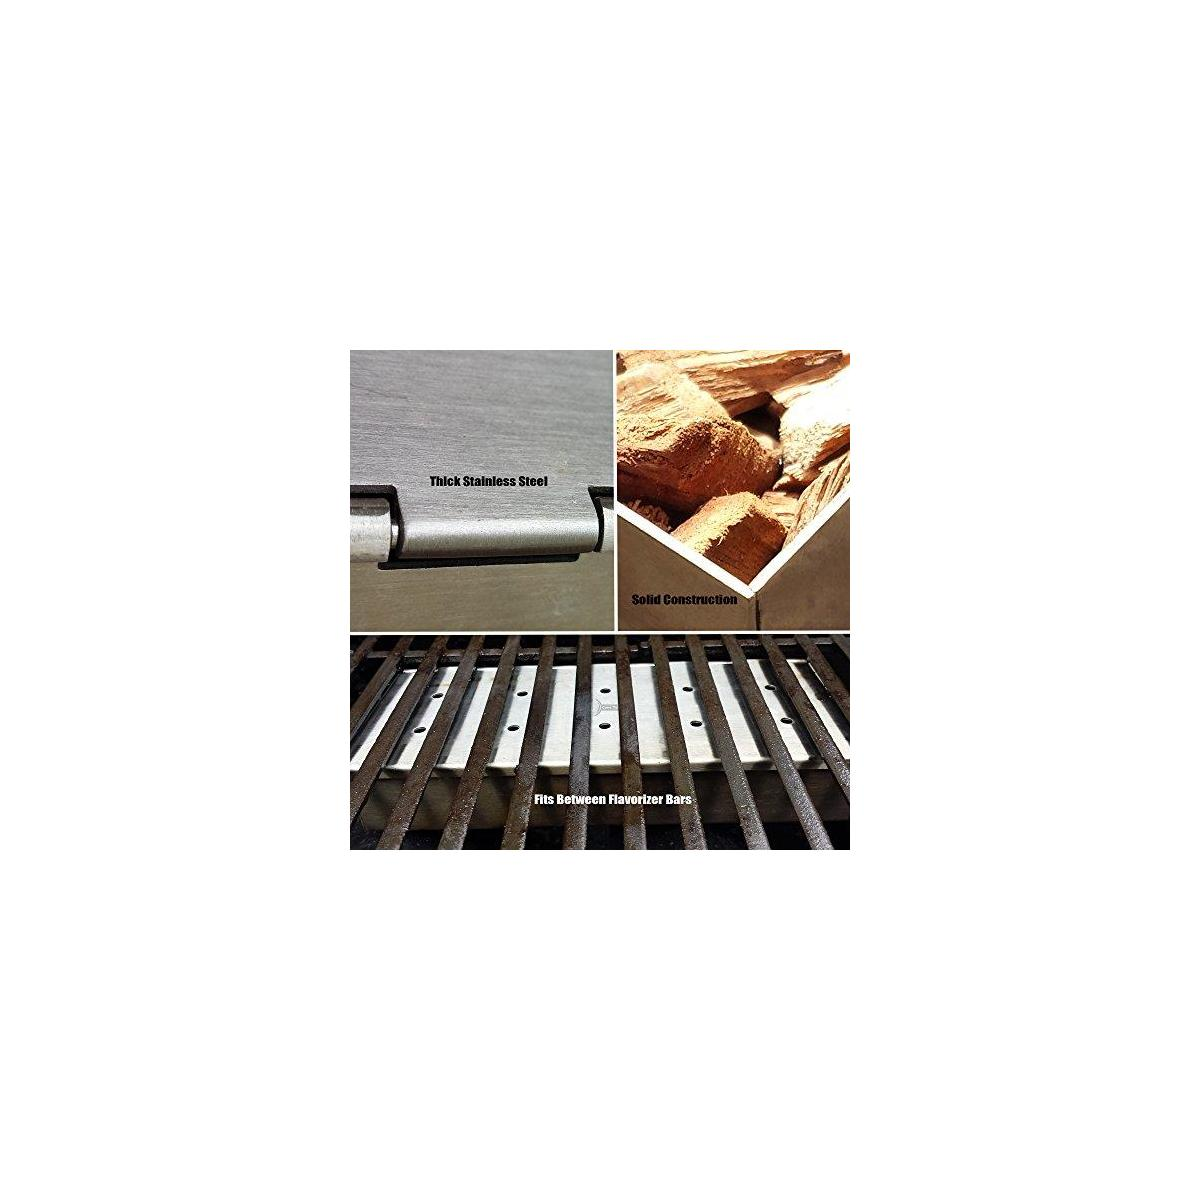 Jalapeno Grill Rack + Smoker Box for BBQ Wood Chips - 25% Thicker Stainless Steel Won't Warp - Charcoal & Gas Barbecue Meat Smoking with Hinged Lid - Best Grilling Accessories Gift Dad